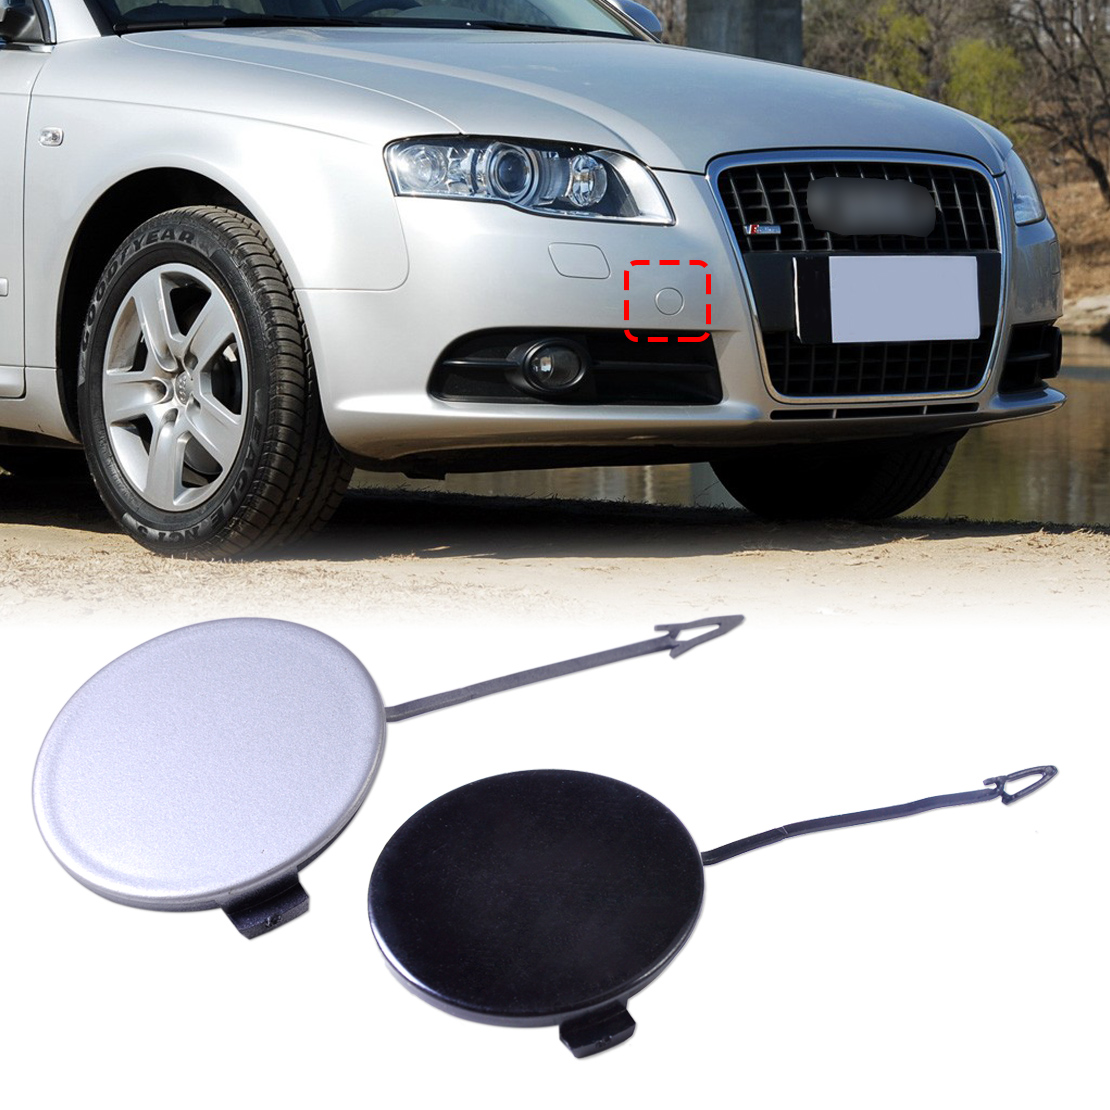 New Plastic Front Bumper Eye Towing Bar Cover Tow Hook Cap 8E0807241C for Audi A4 Quattro S4 B7 2005 2006 2007 2008 8E0 807 241C